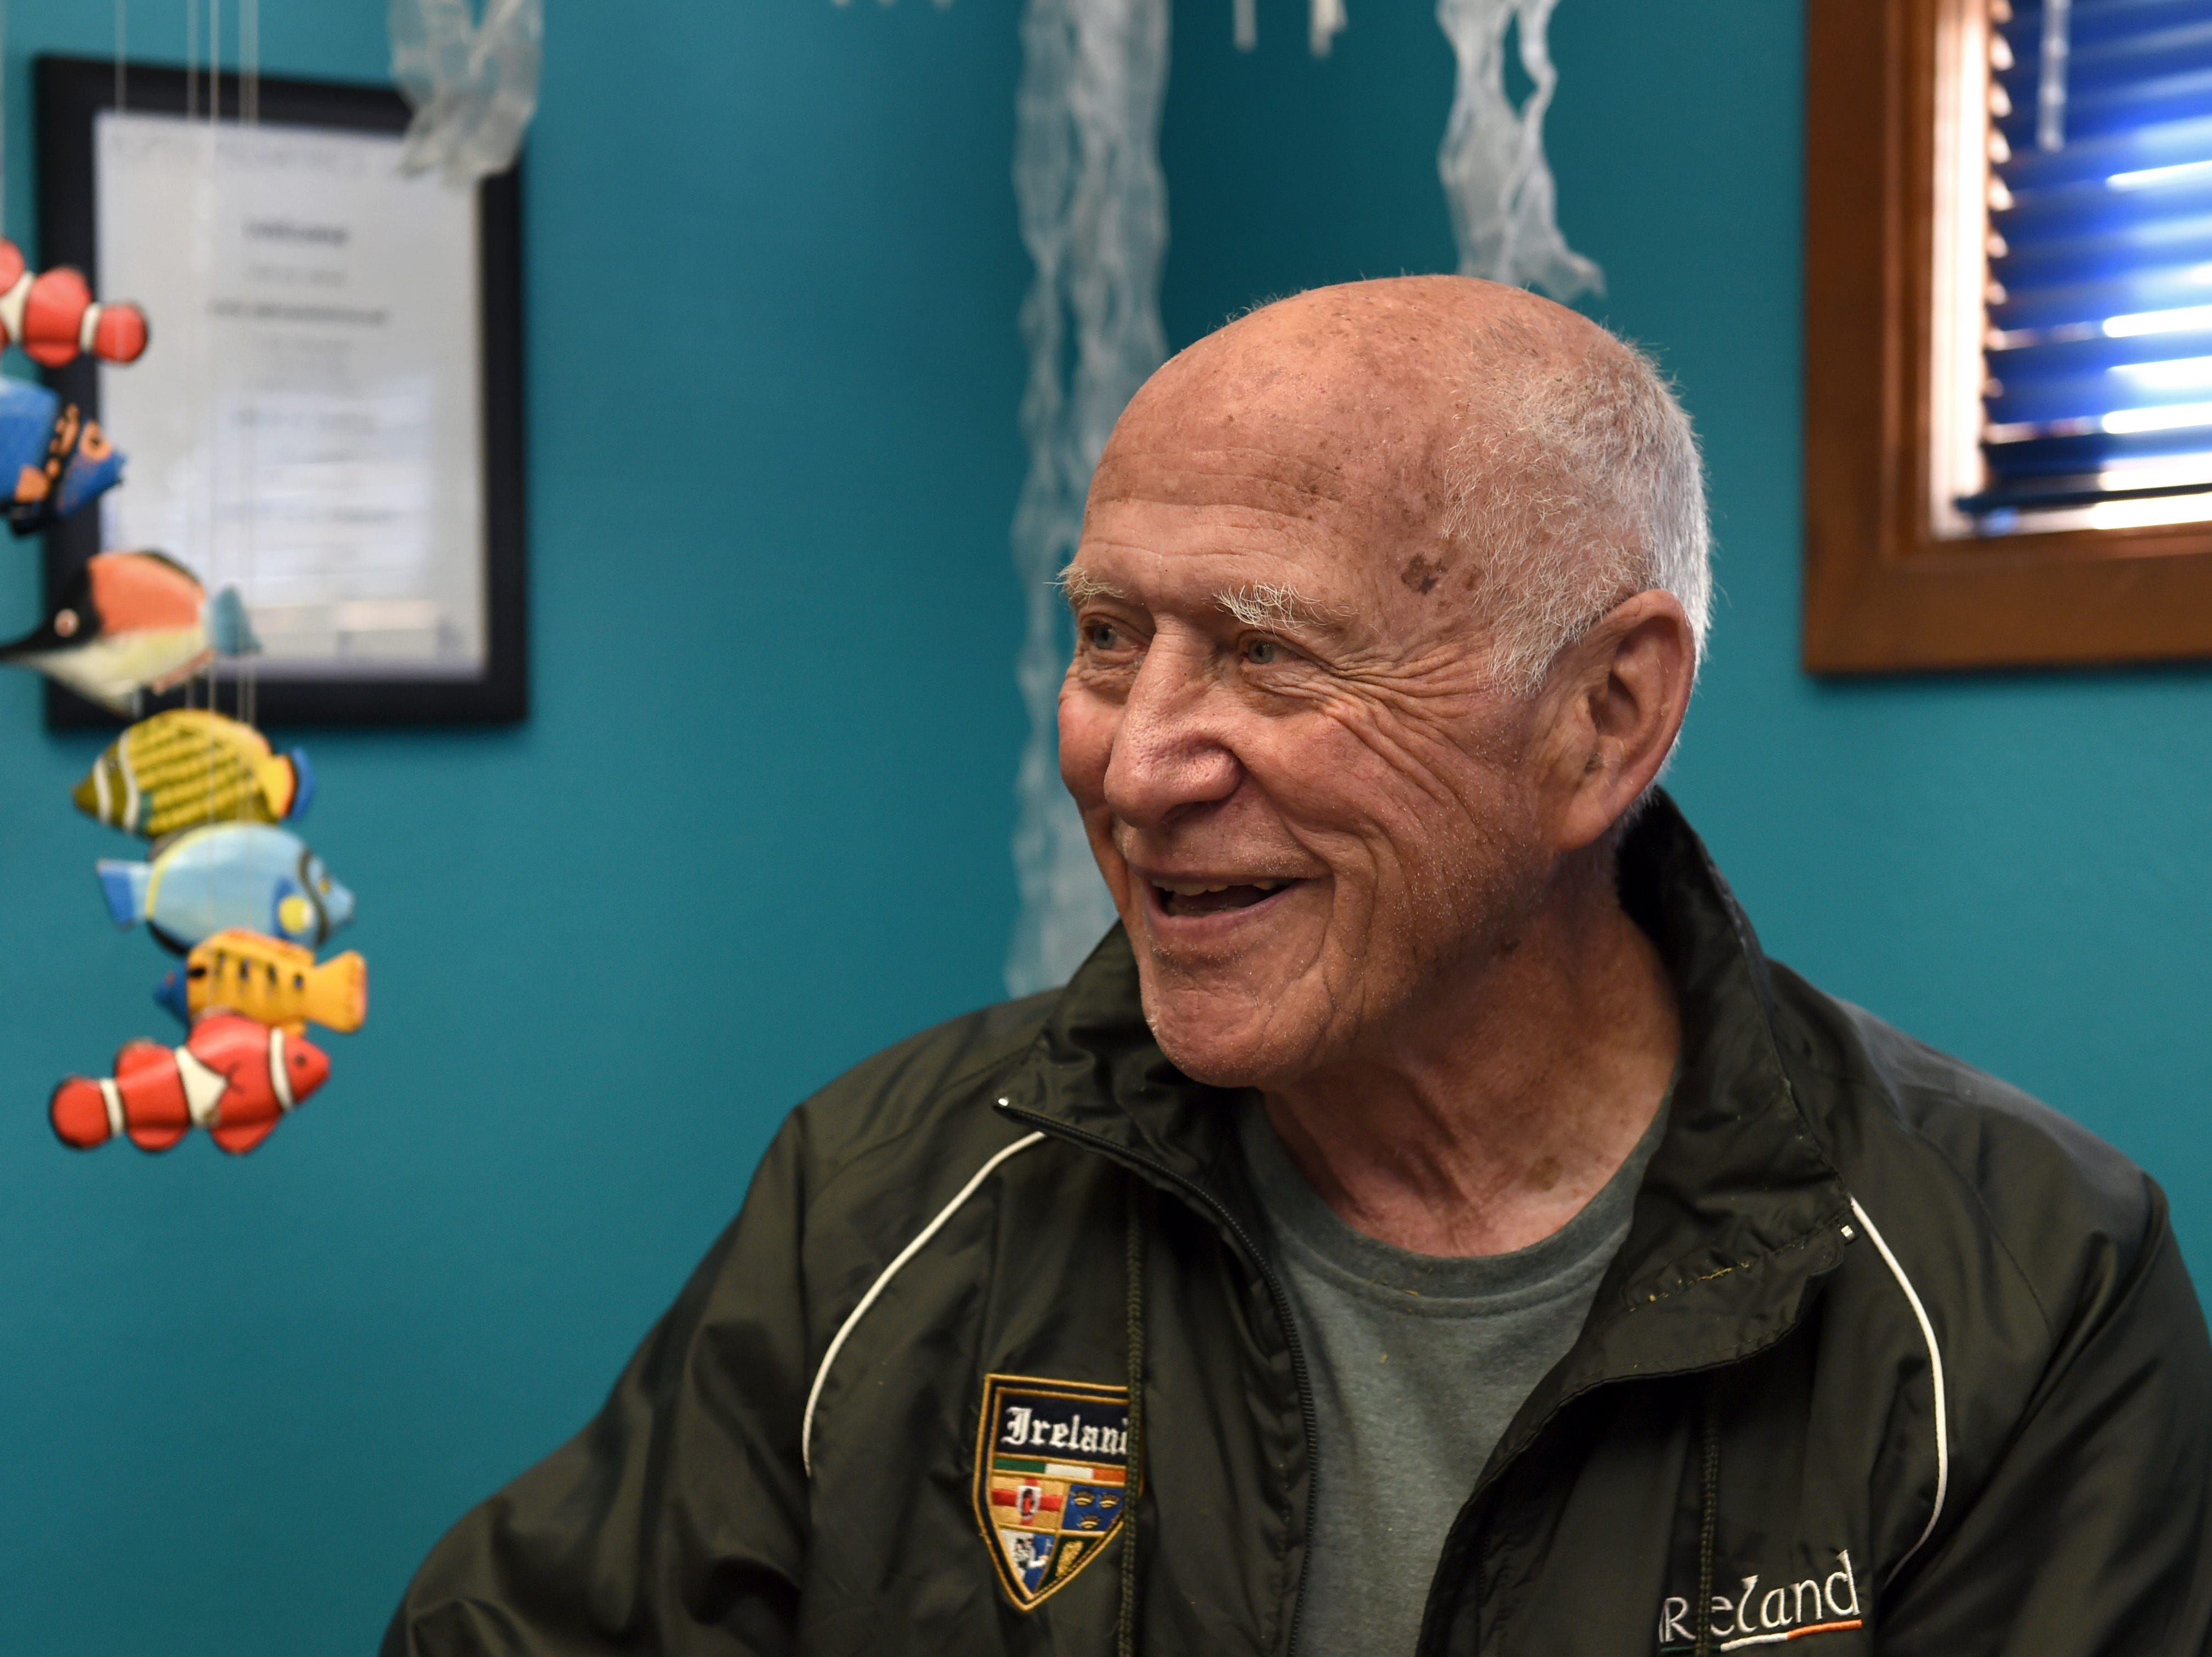 Dr. Patrick Colletti Smiles as he talks about his 50-year career as a pediatrician in Reno.